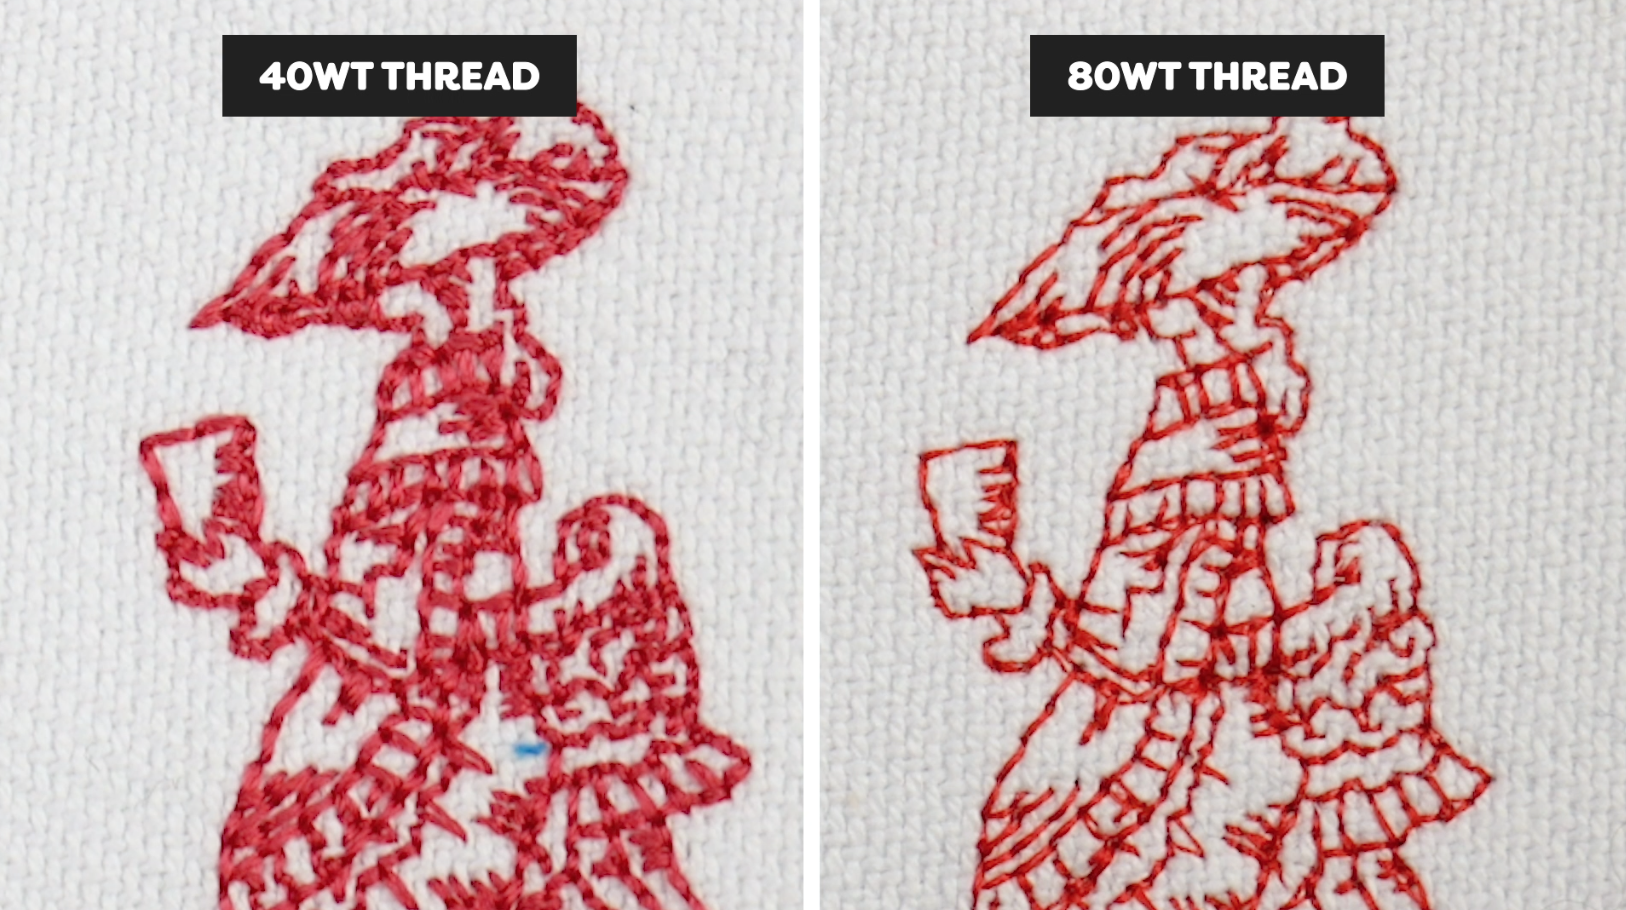 Same size embroidery design using 40wt thread on the left and 80wt thread on the right.